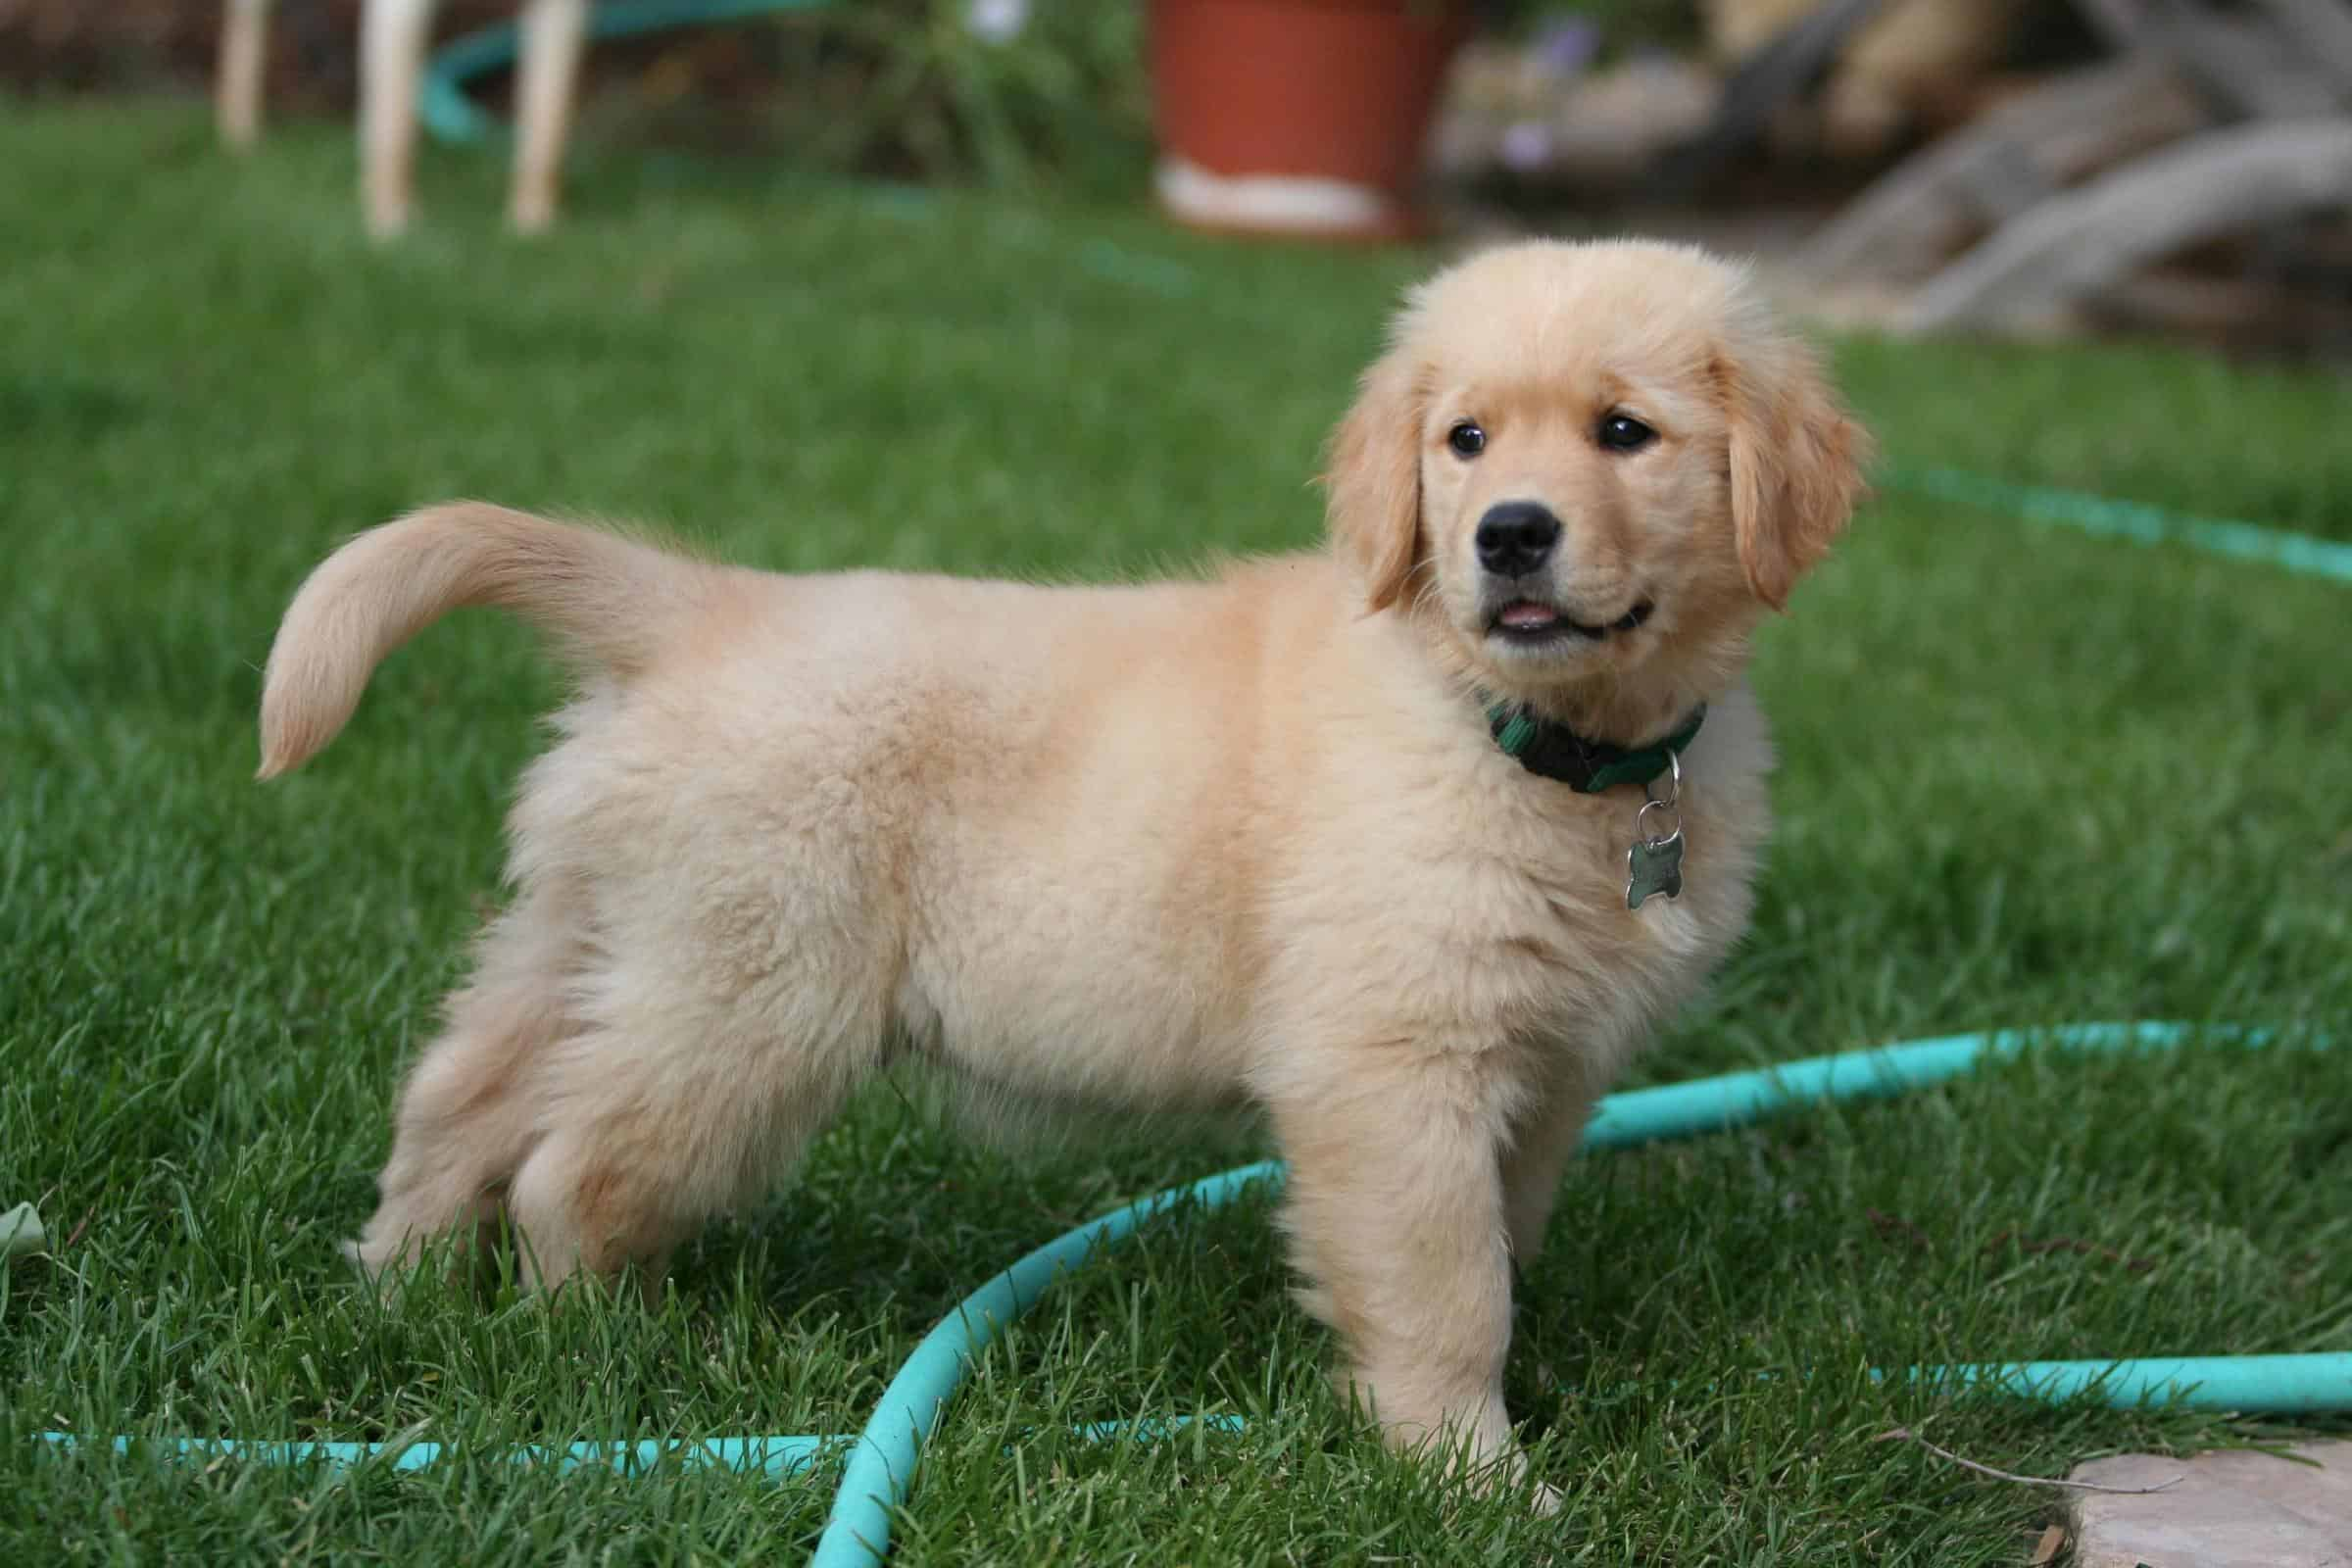 Can Golden Retrievers Have Brown Rice or White Rice?